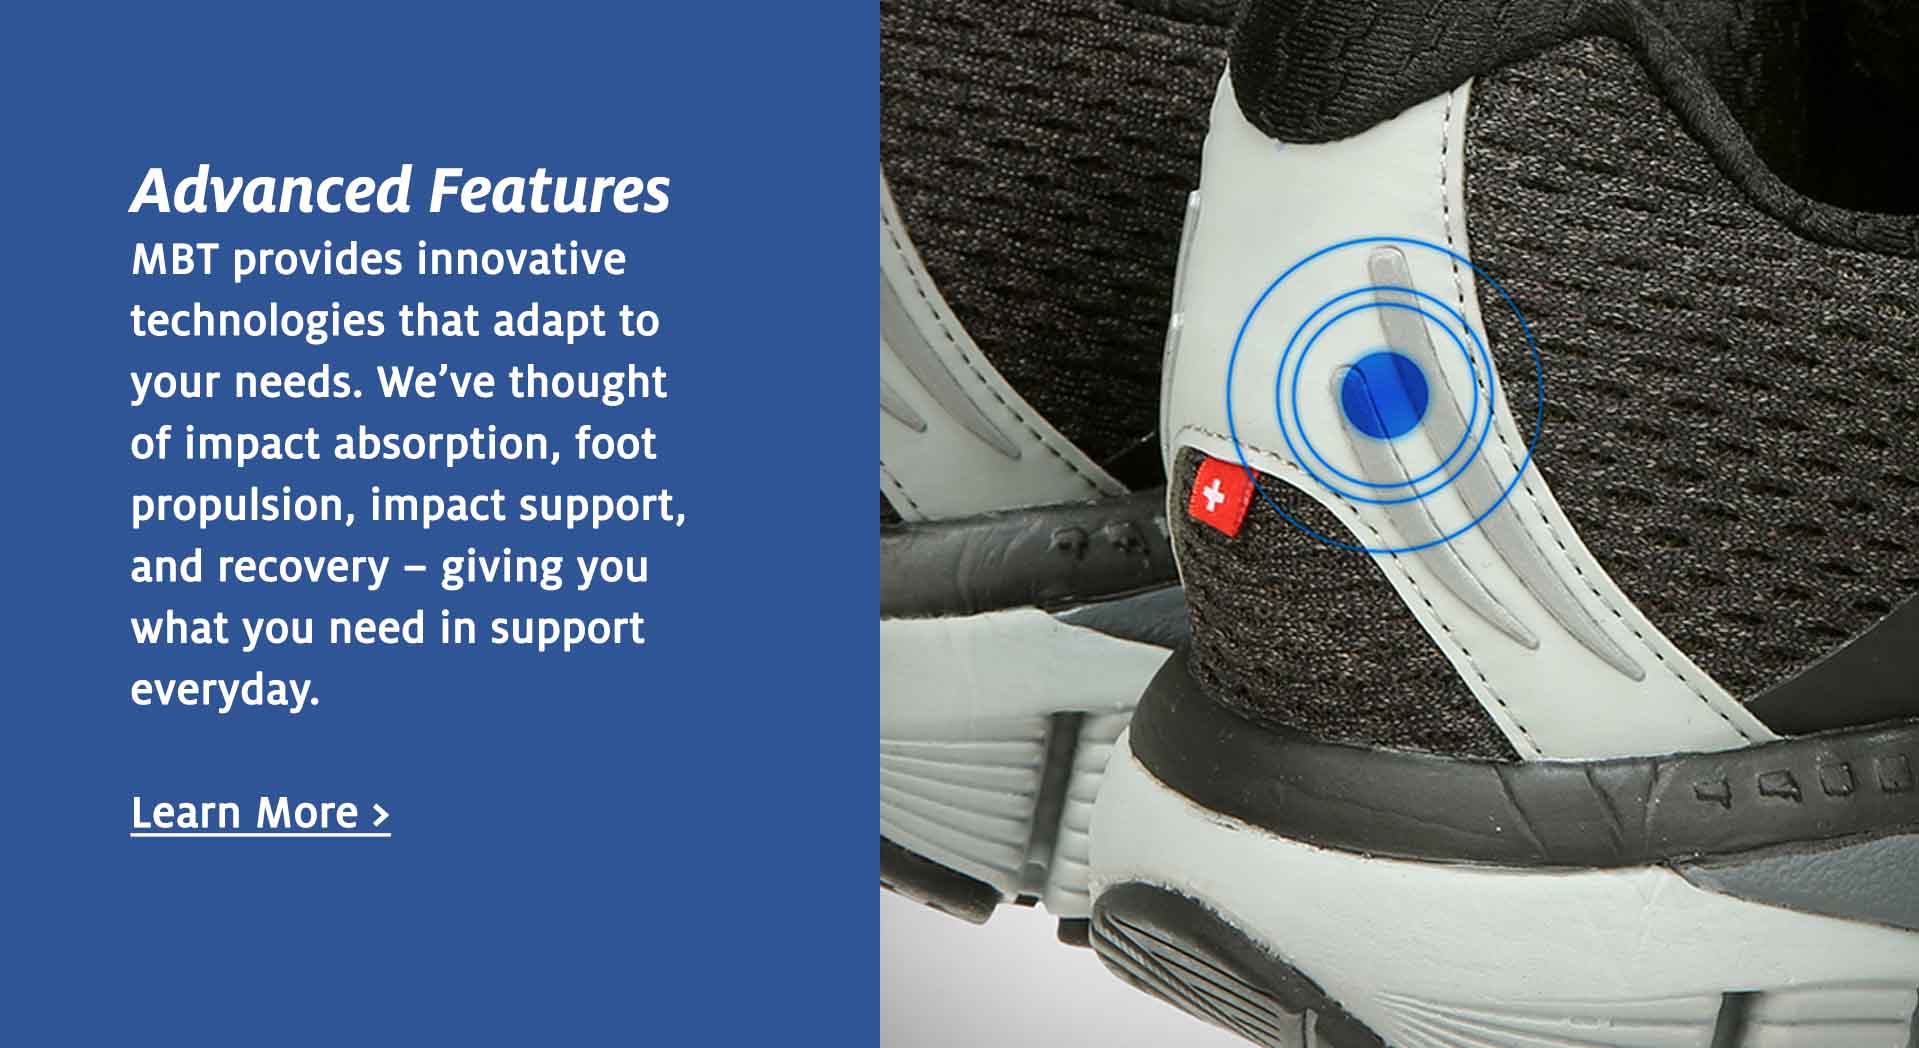 Advanced Features in MBT Shoes